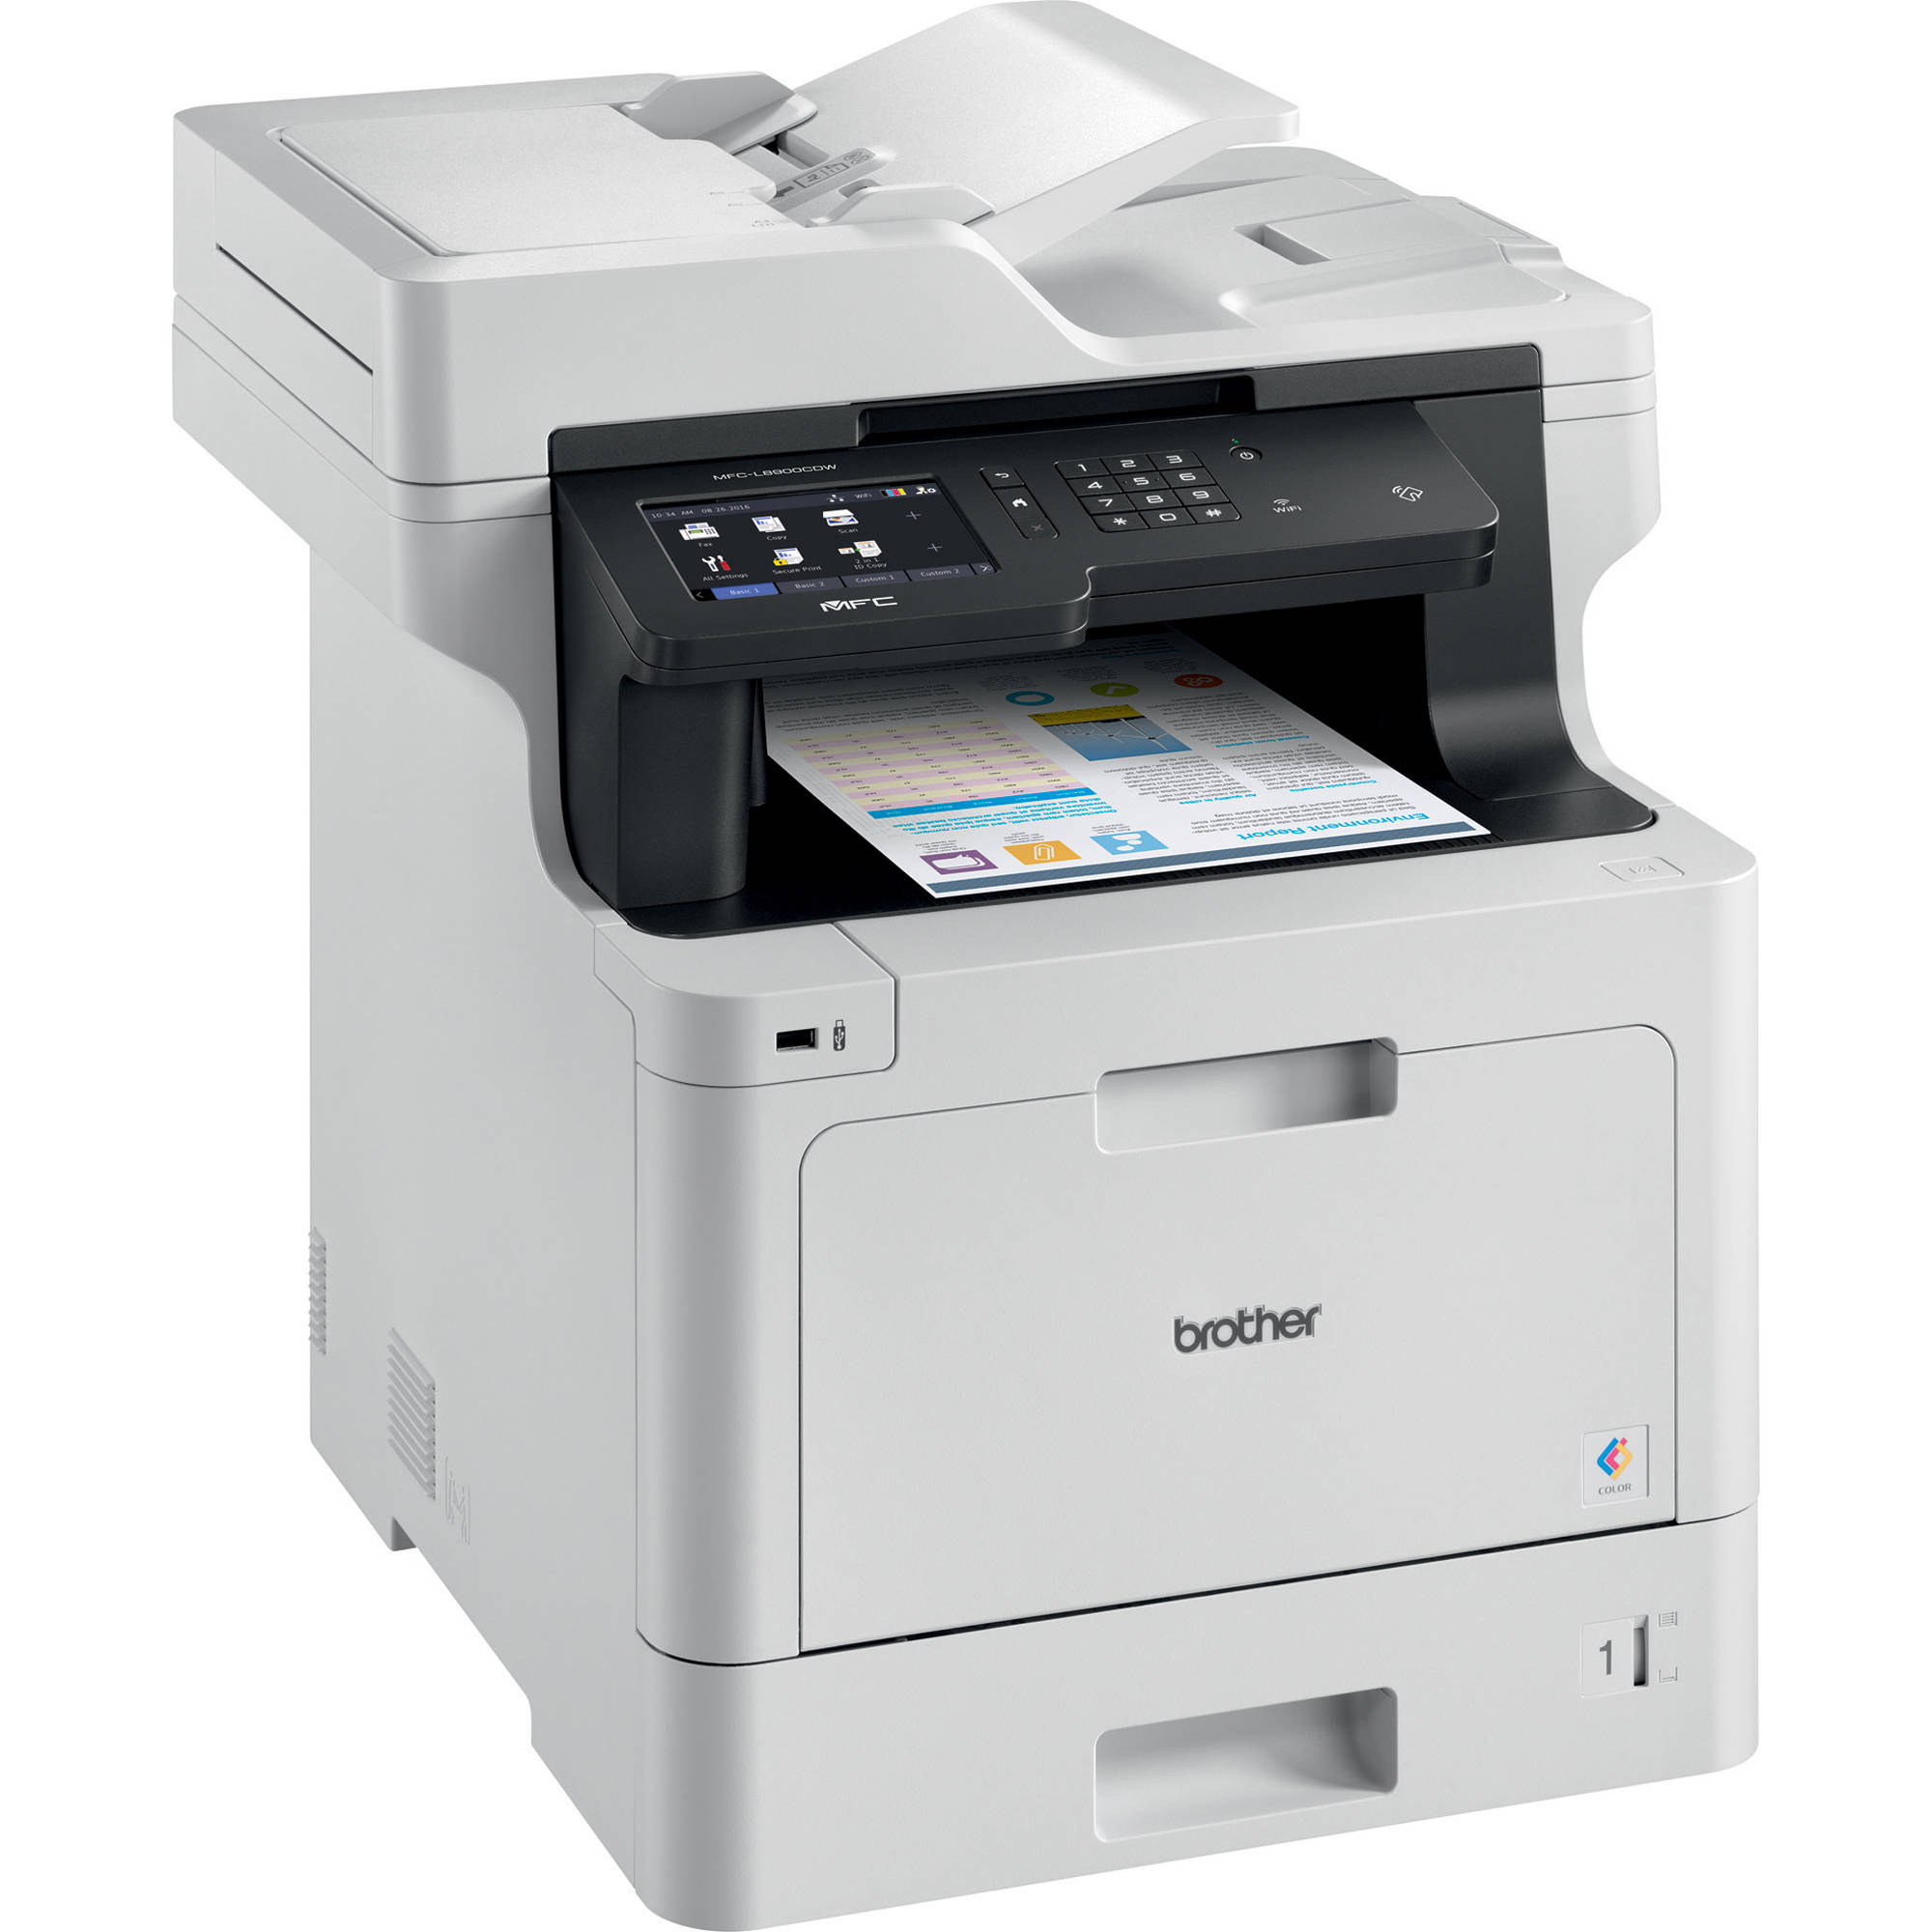 Brother MFC-L8900CDW All-in-One Color Laser Printer